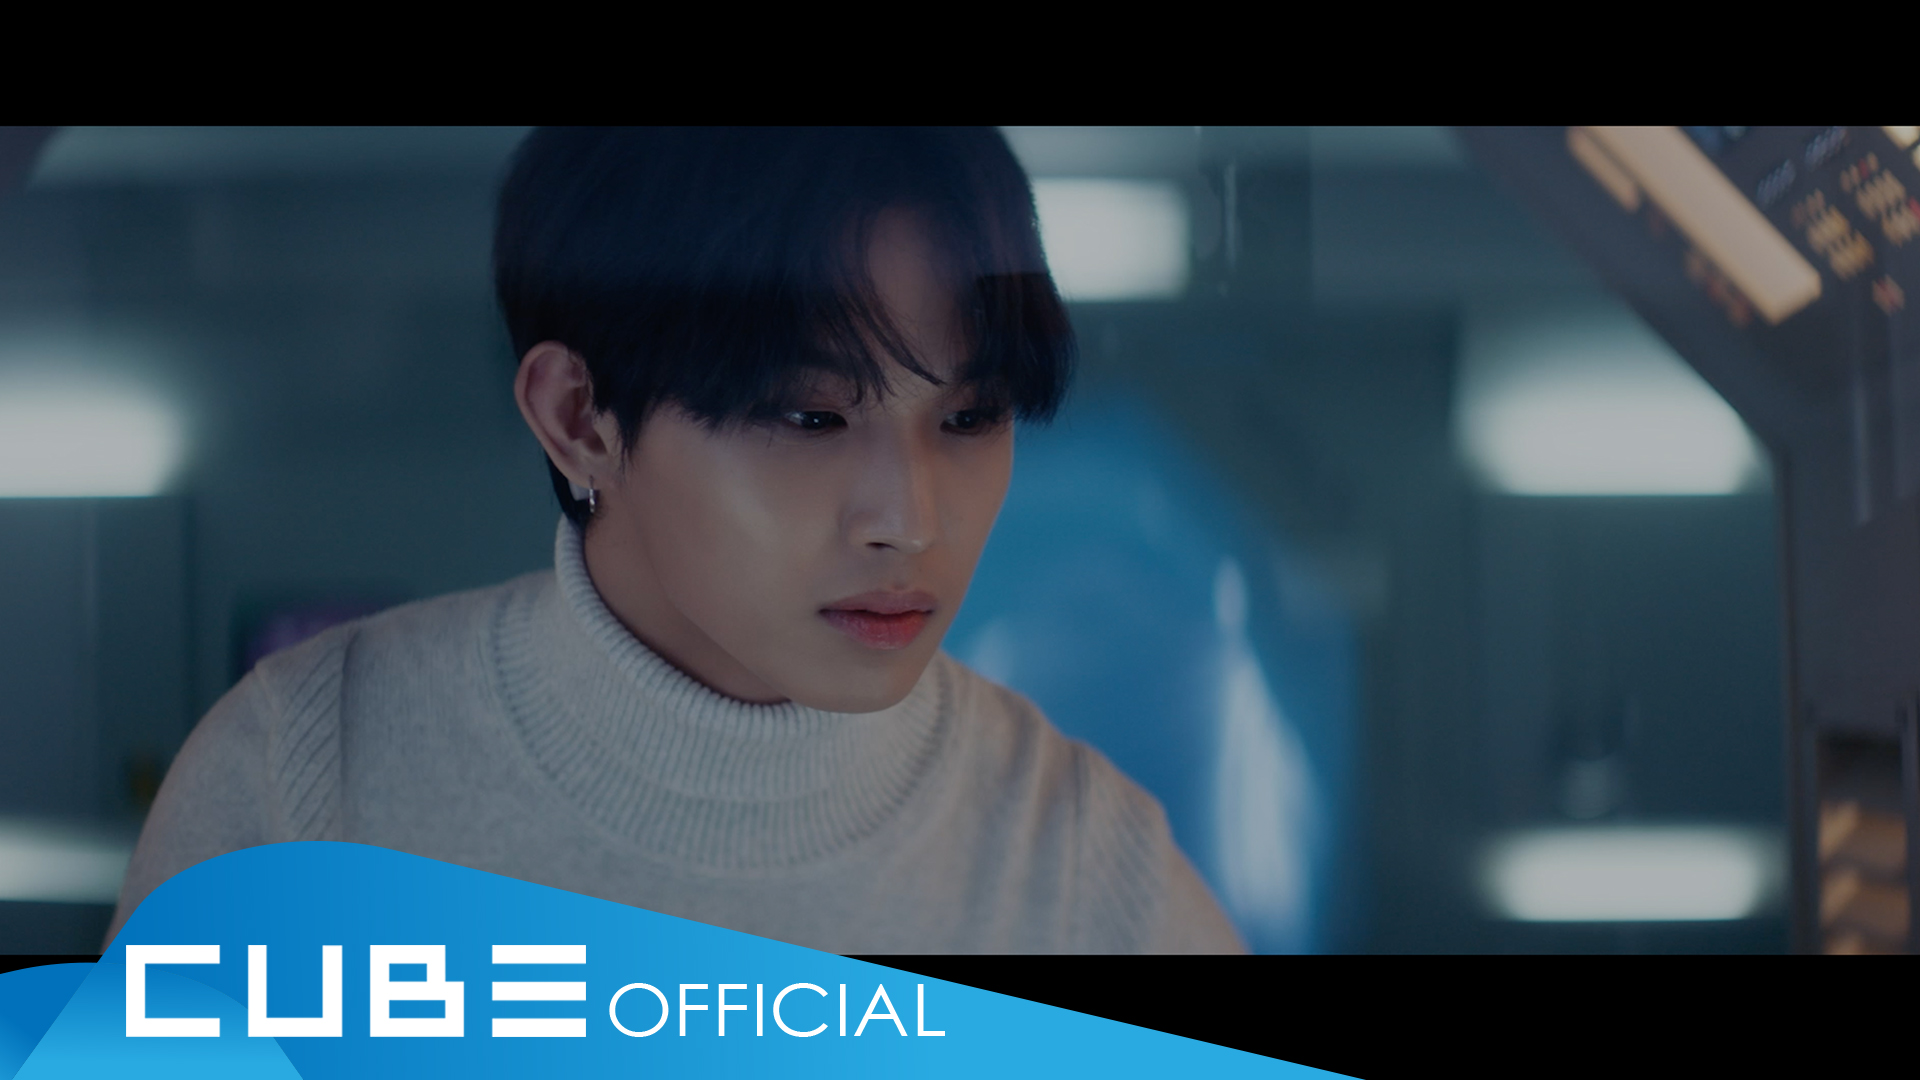 임현식 - 'DEAR LOVE' Official Music Video